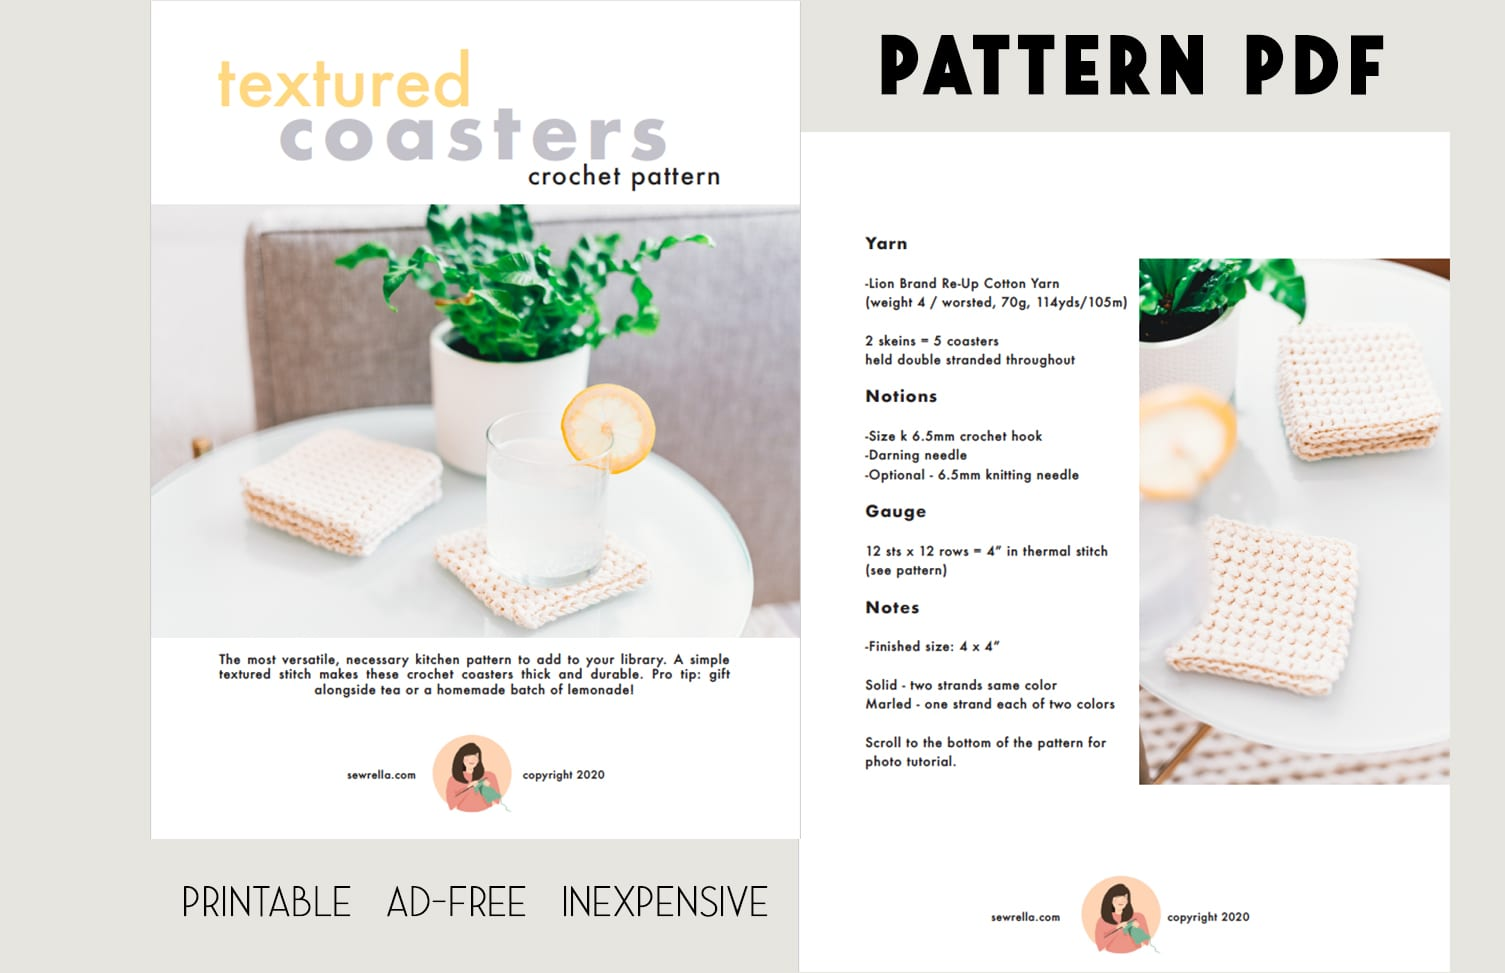 inexpensive pdf copy of textured crochet coasters